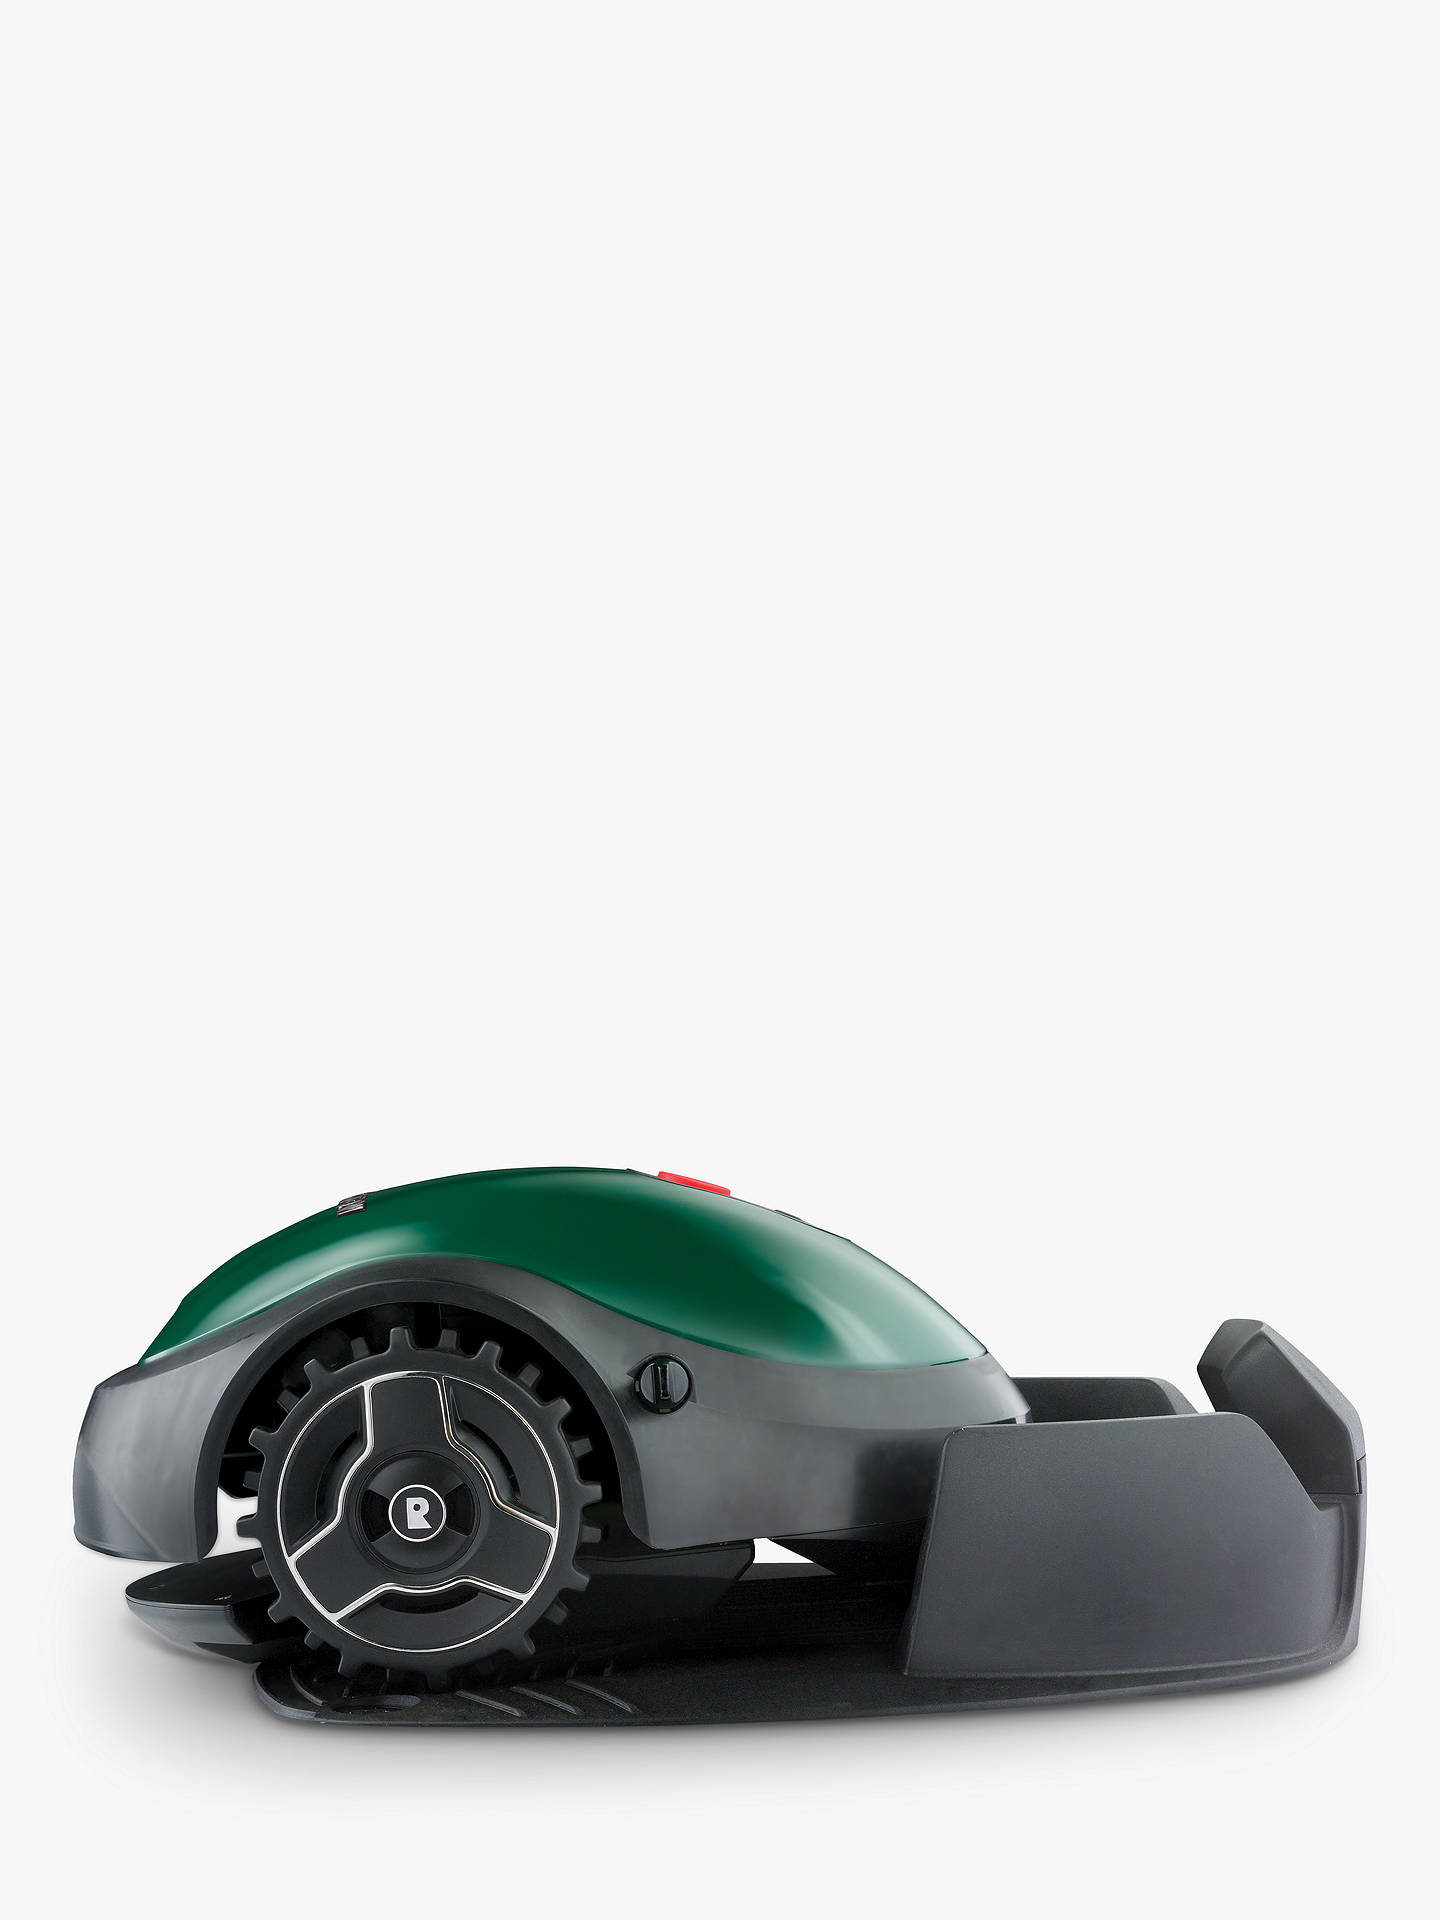 BuyRobomow RX20U Automatic Robotic Lawnmower Online at johnlewis.com